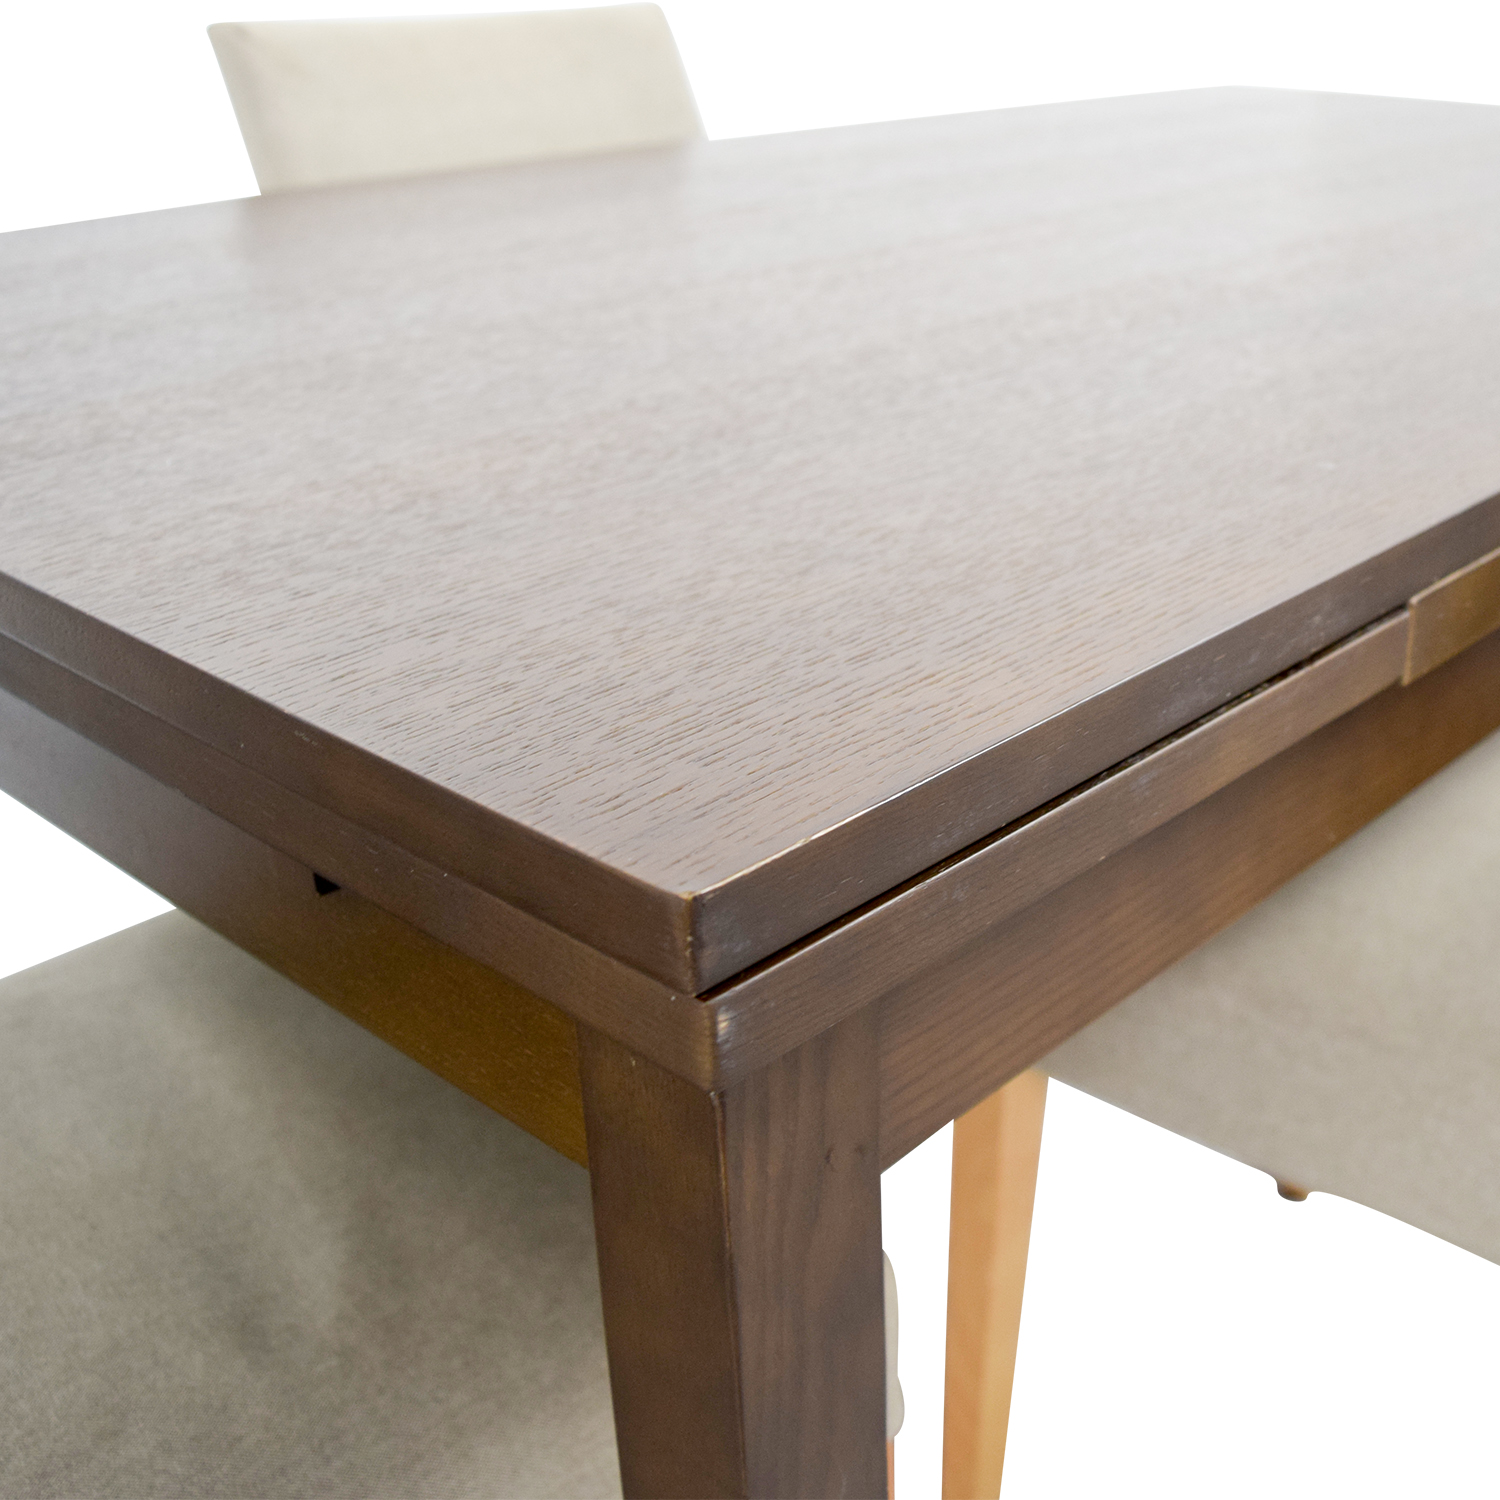 Muji Extendable Dining Table With Chairs